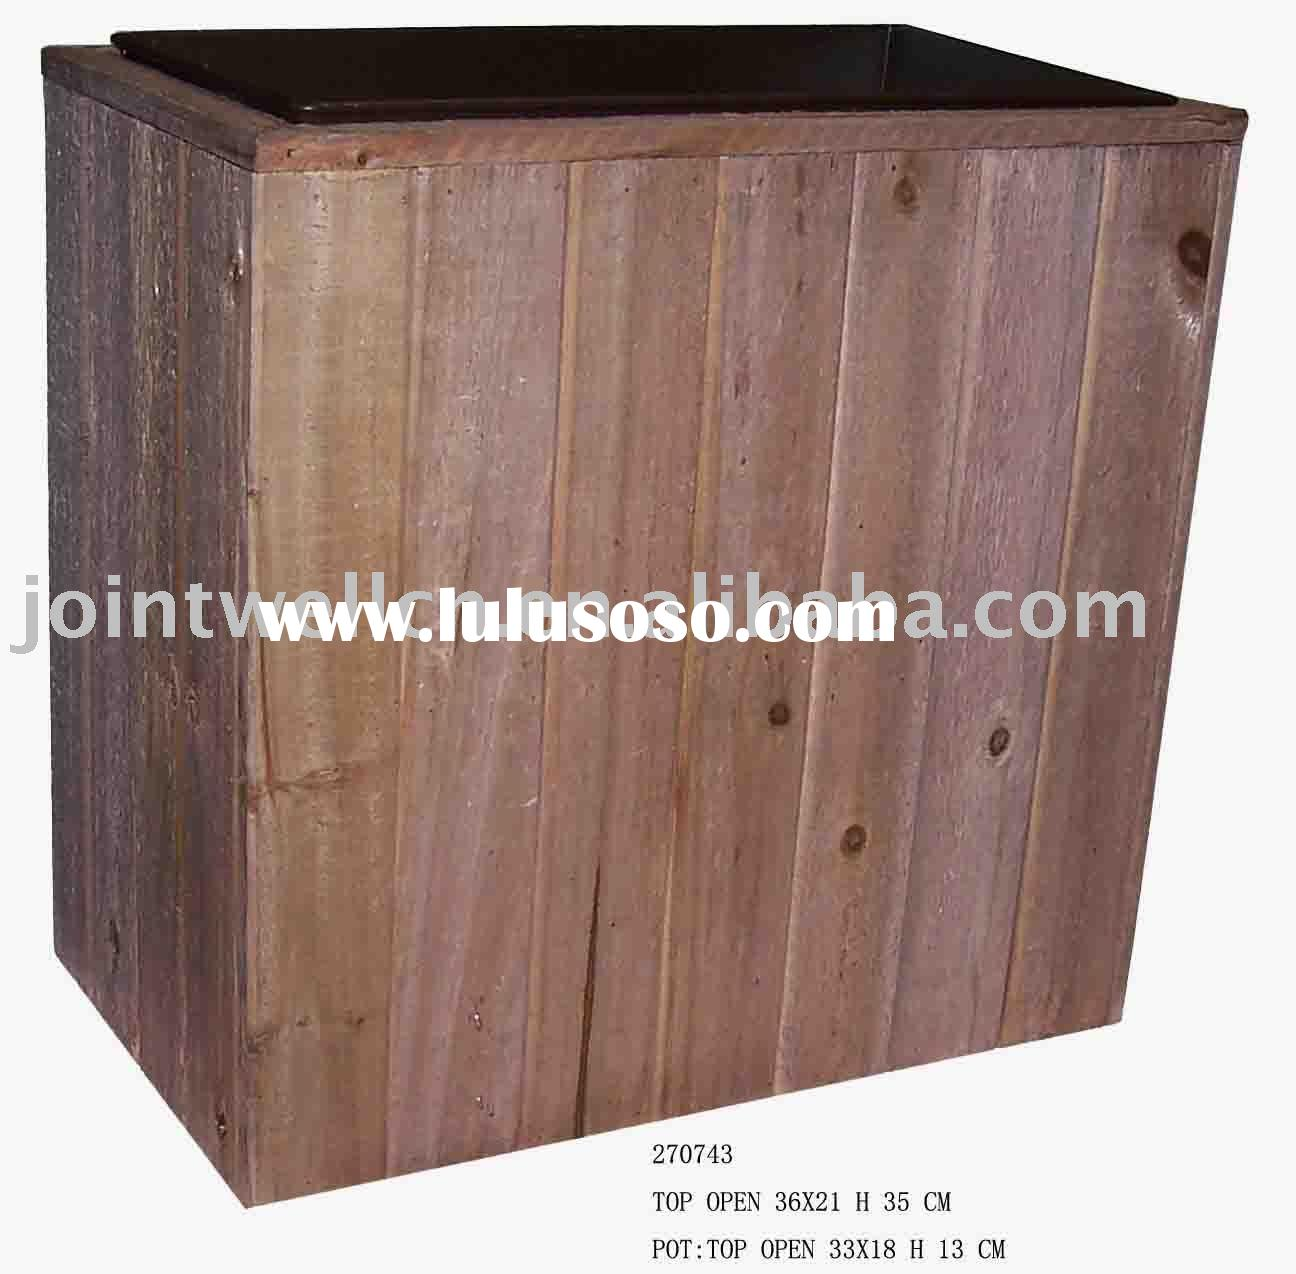 Big Wooden Garden Flower Pots for Decorative